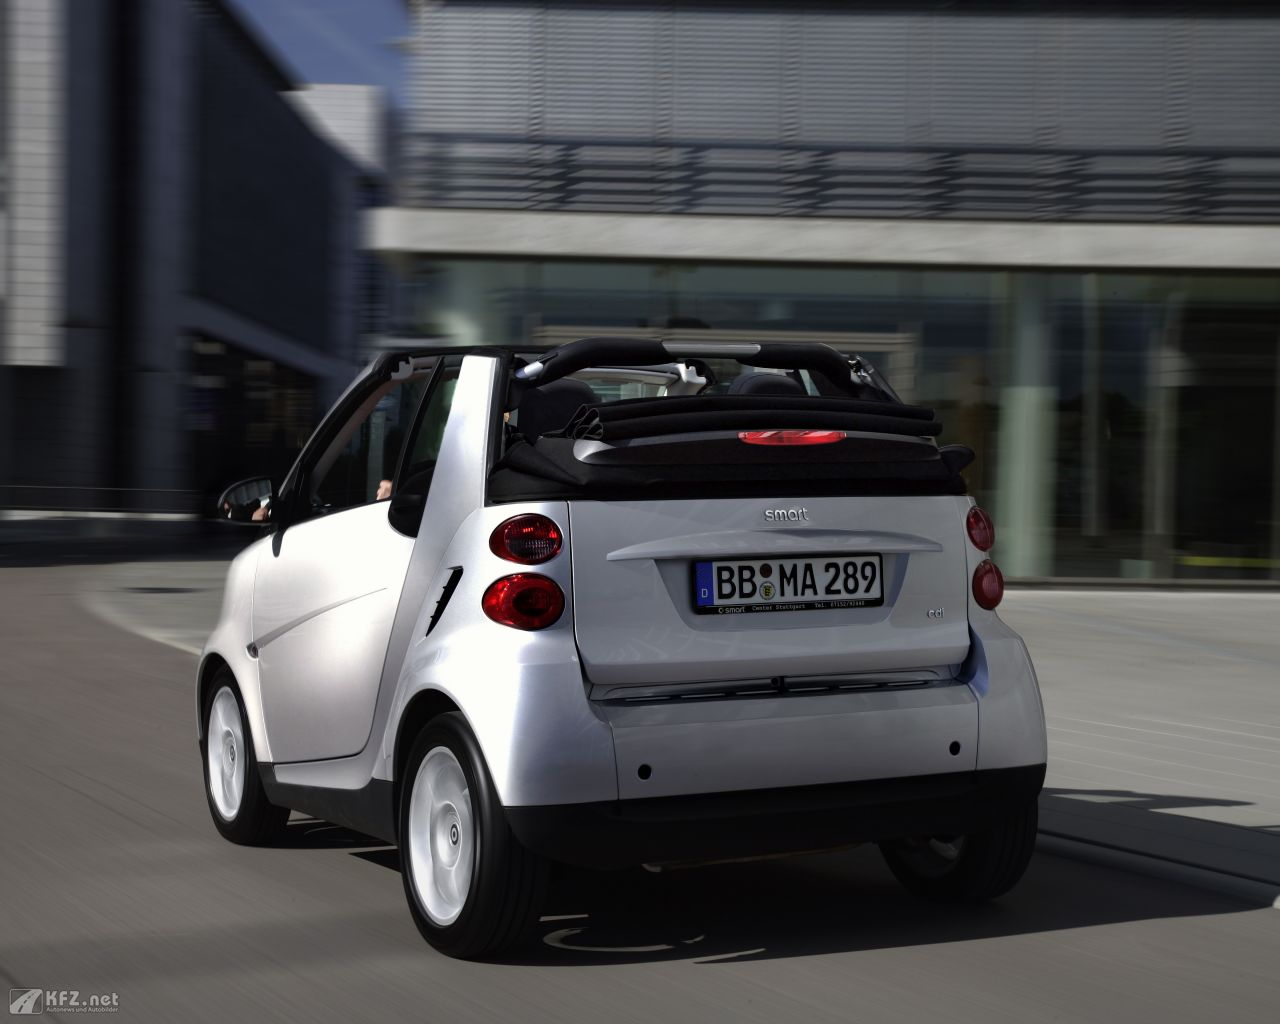 smart-fortwo-1280x1024-15